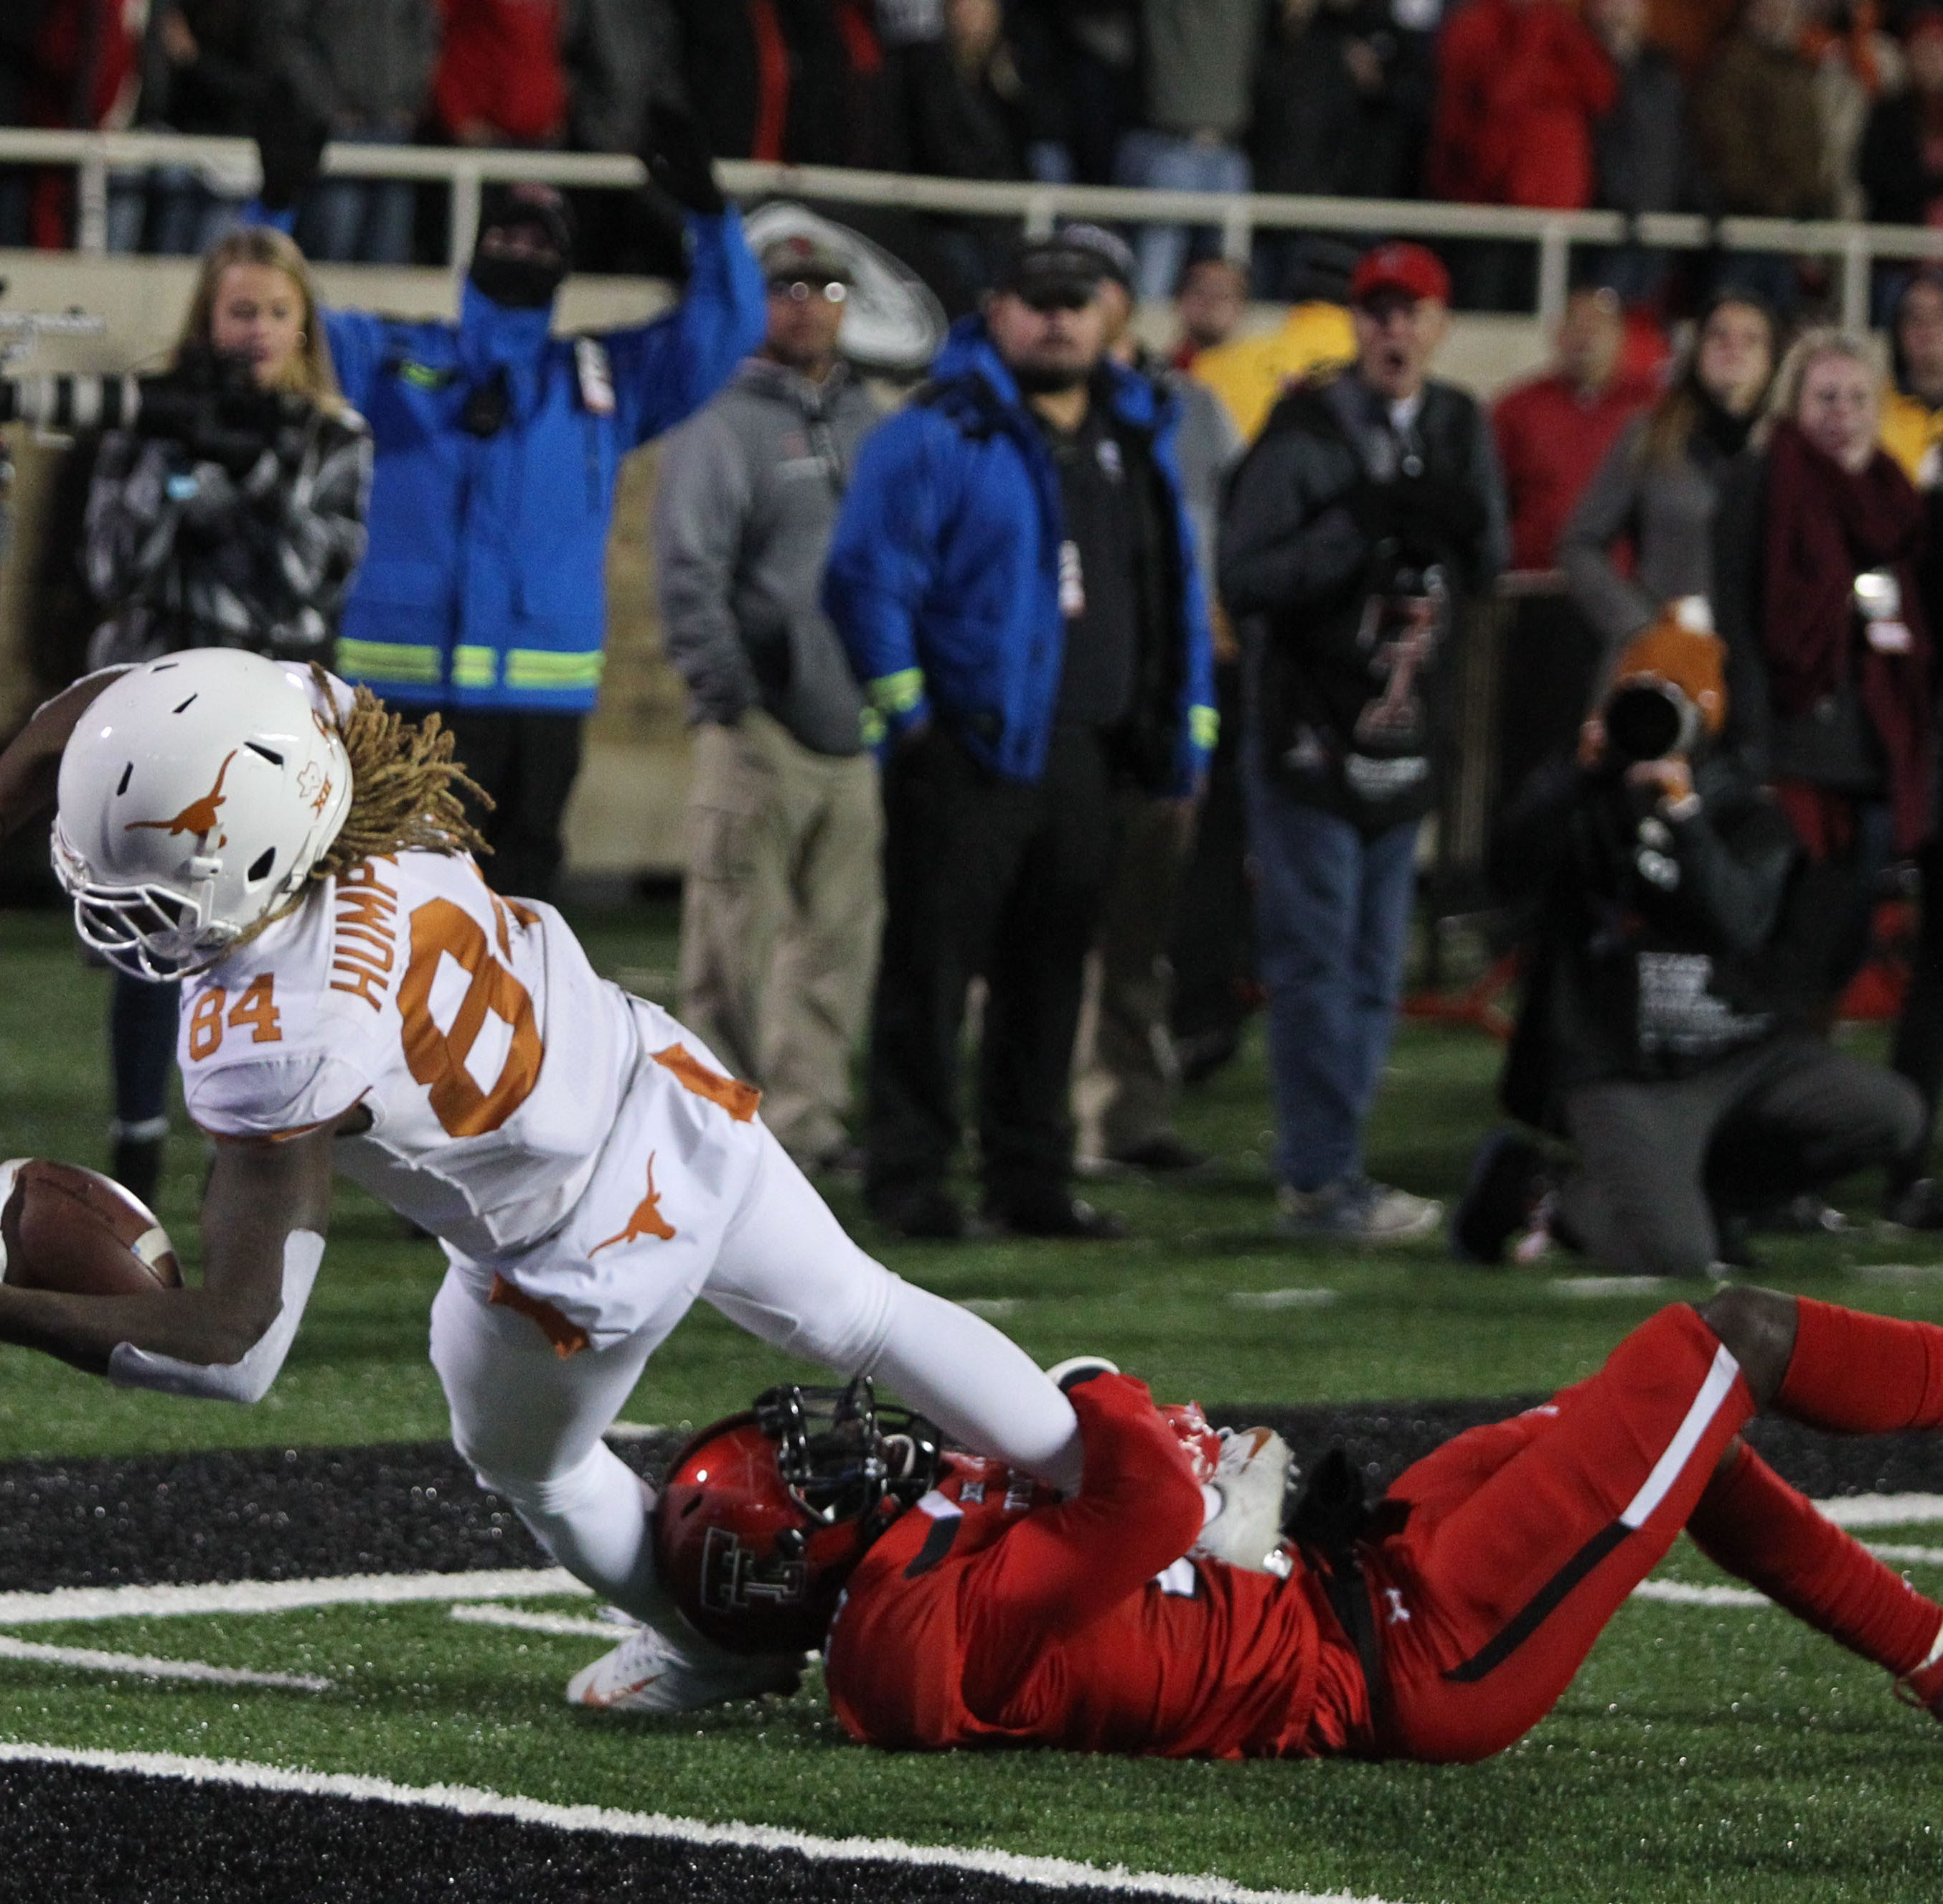 Texas Longhorns wide receiver Lil'Jordan Humphrey (84) lunges for the end zone over Texas Tech Red Raiders defensive back Demarcus Fields (23) to score the winning touchdown late in the fourth quarter at Jones AT&T Stadium.